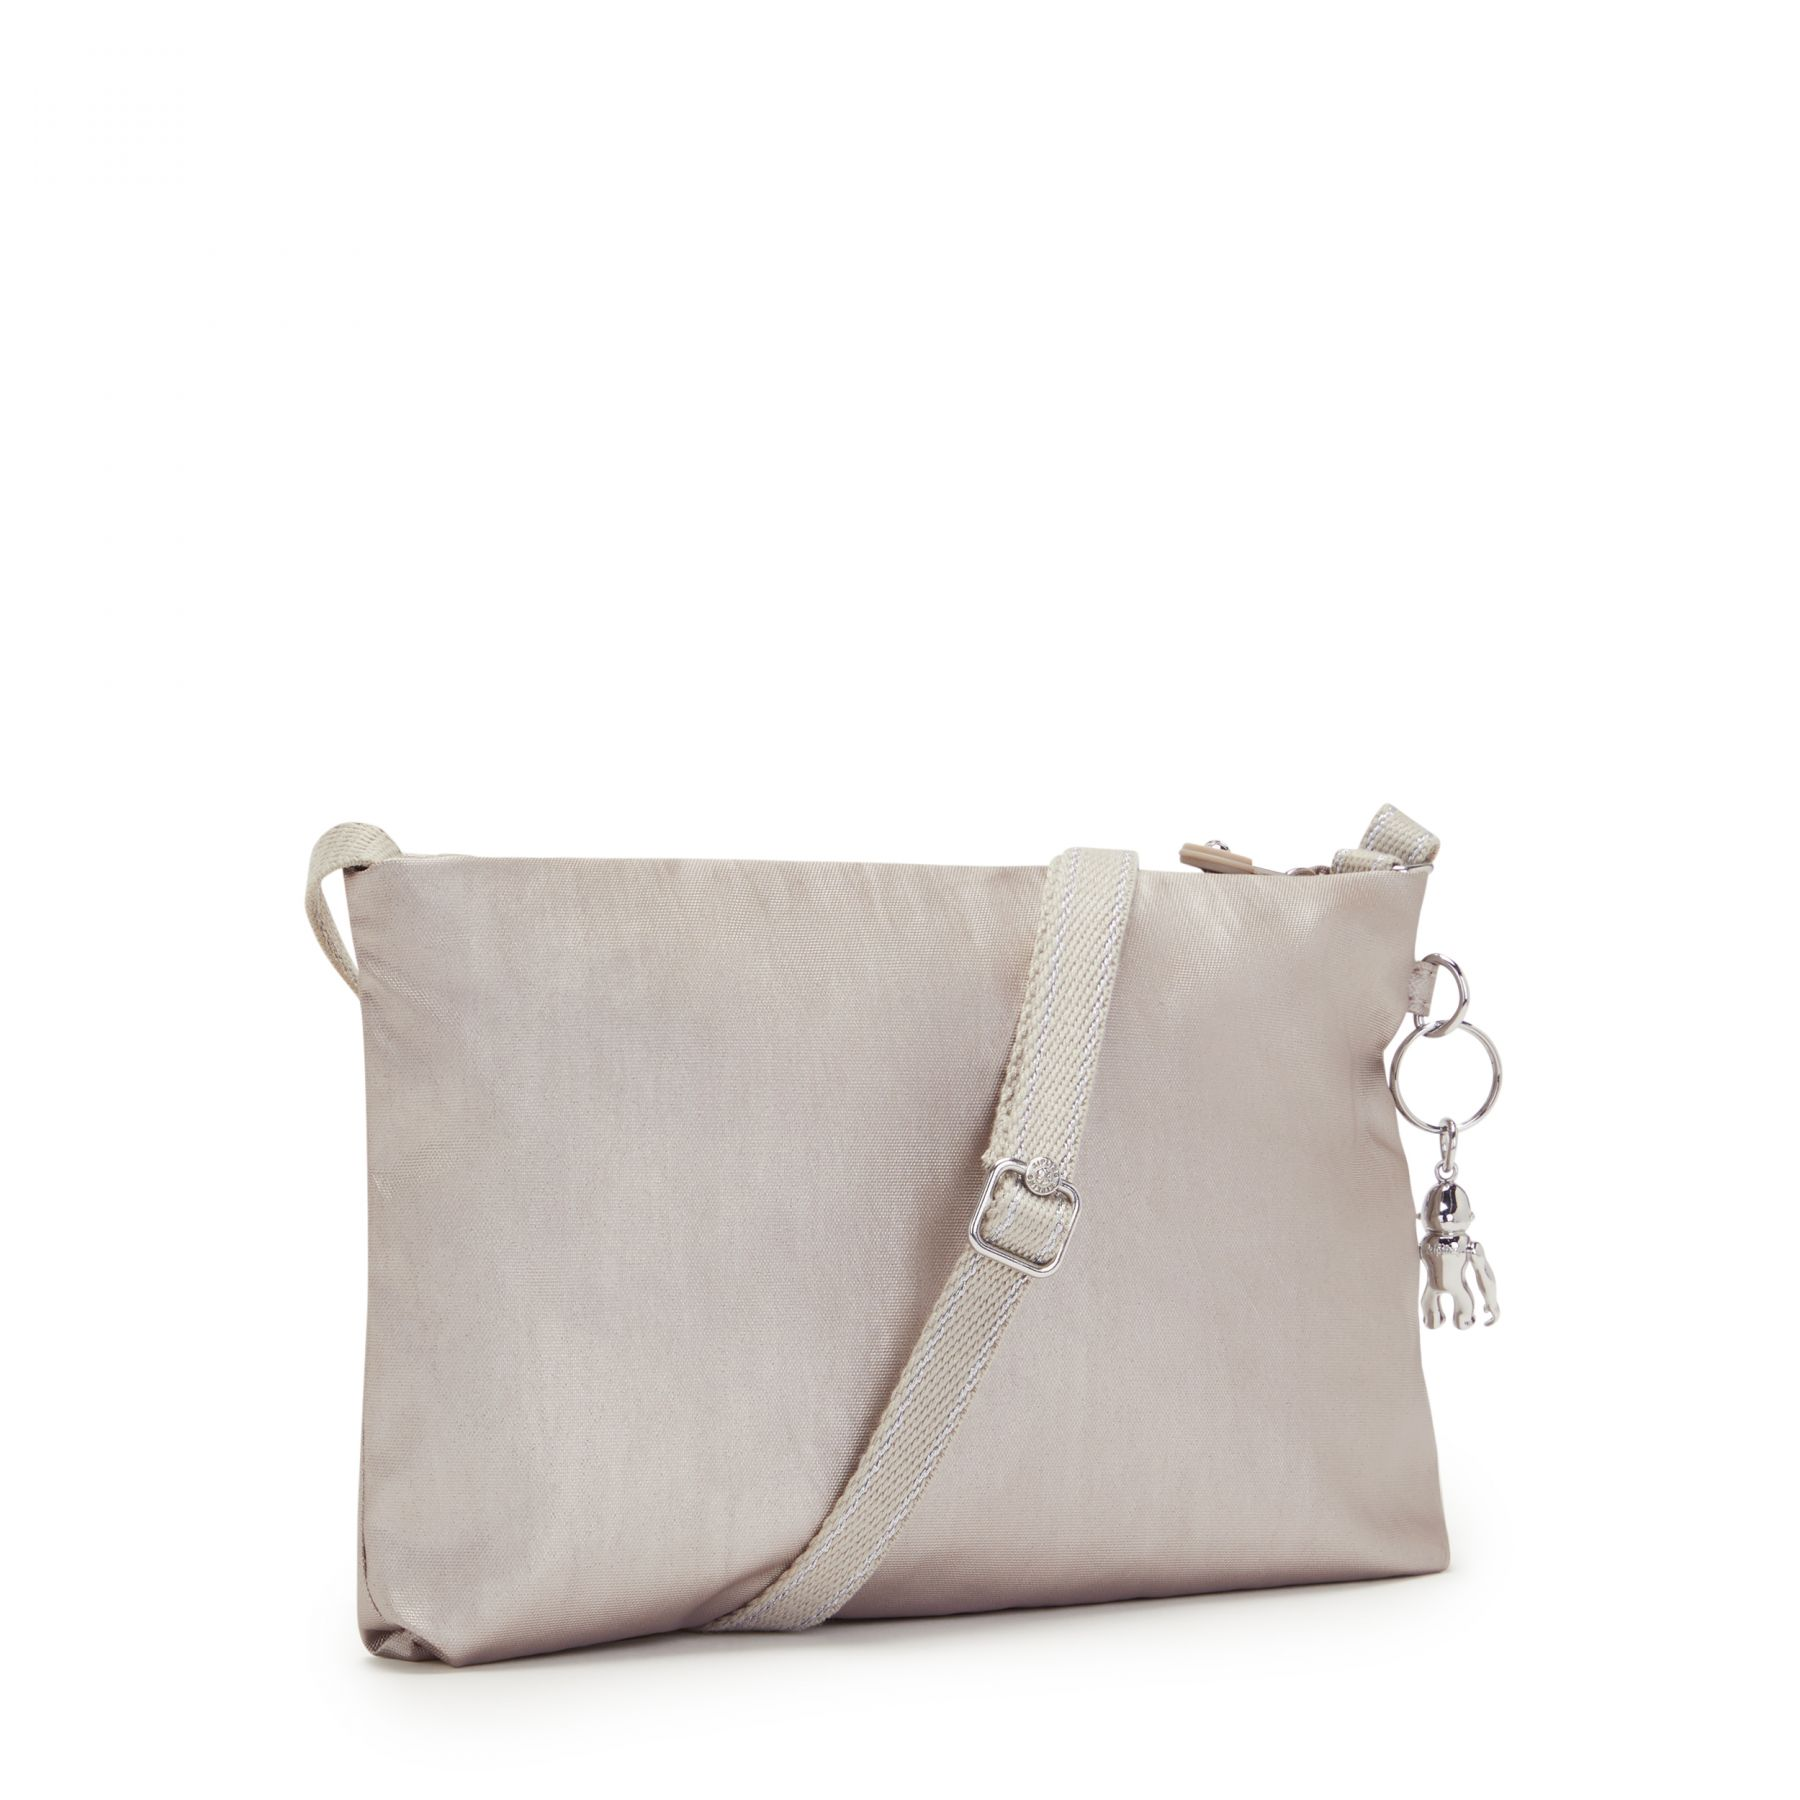 ATLEZ DUO ACCESSORIES by Kipling - Back view